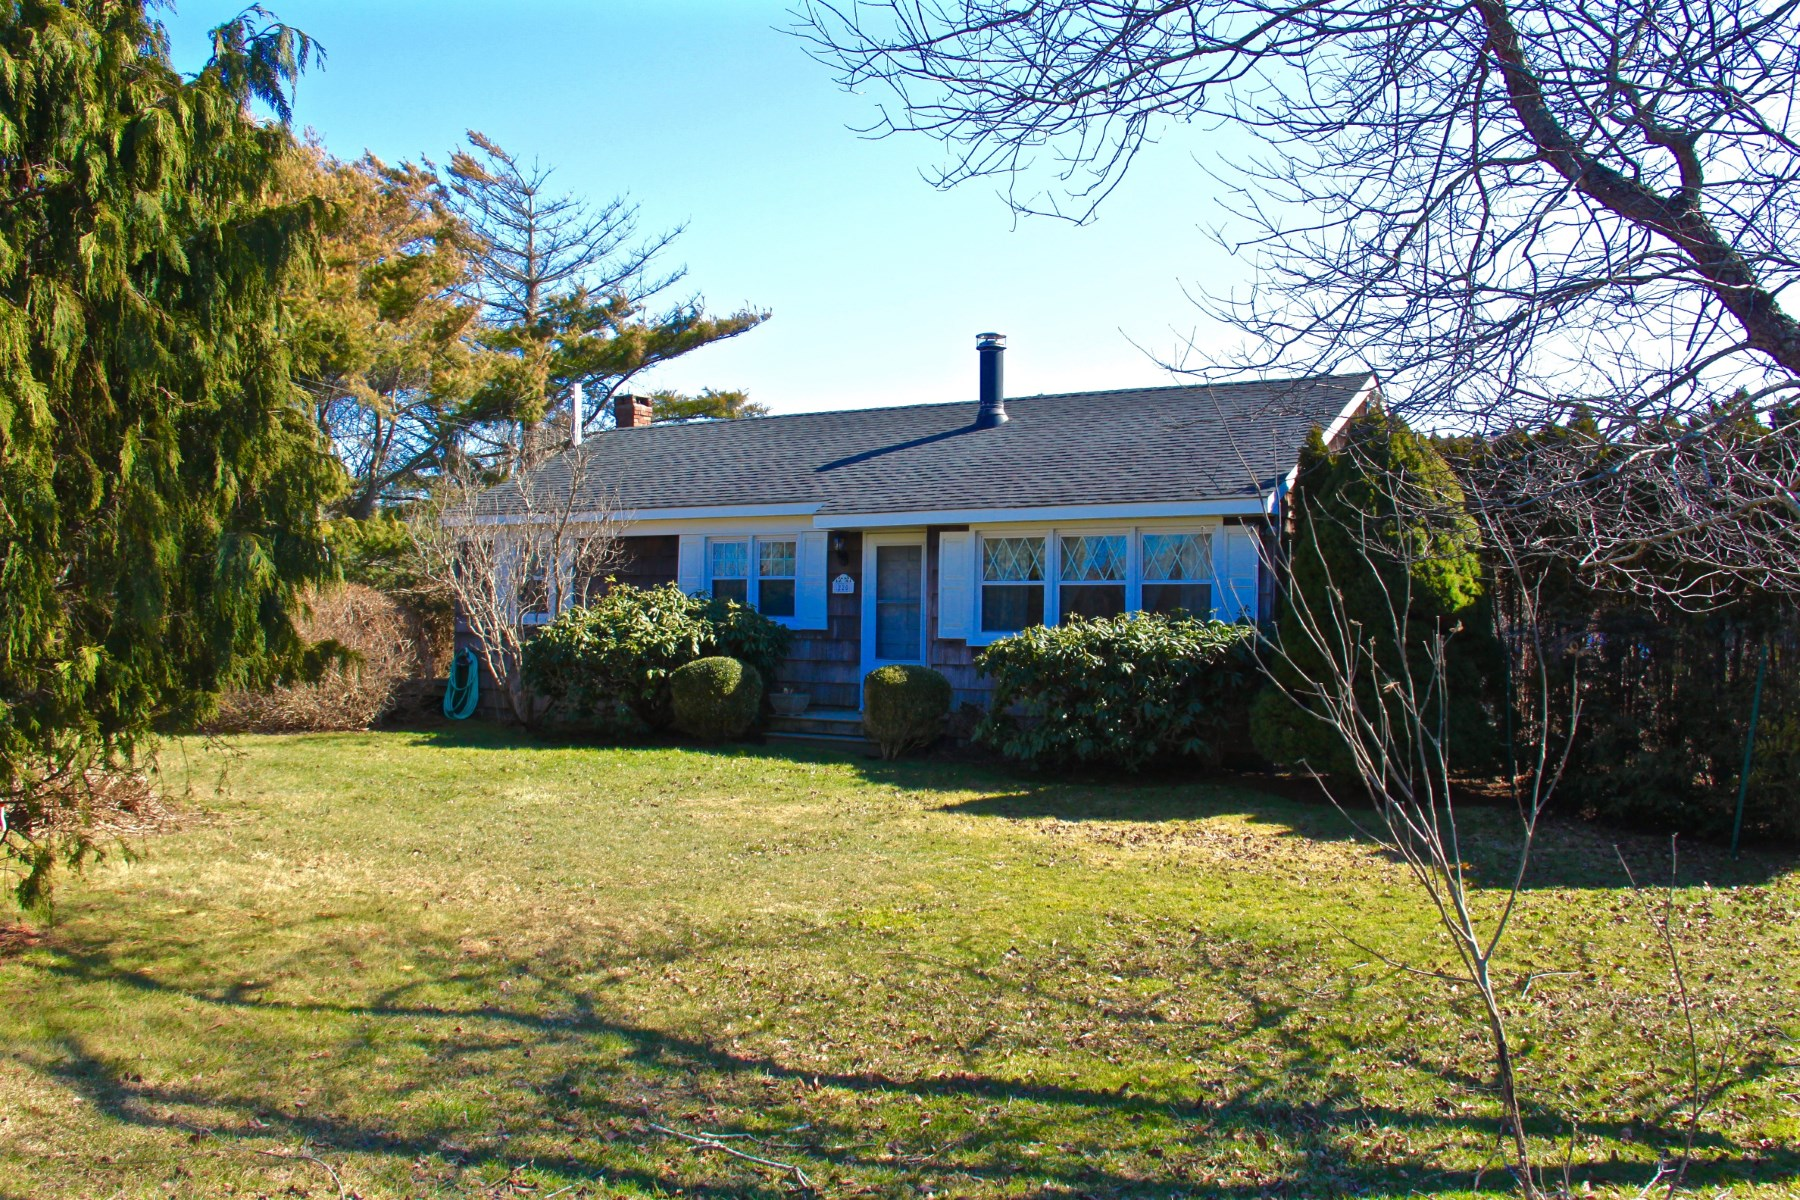 Single Family Home for Rent at Affordable Sagaponack Bungalow Sagaponack, New York 11962 United States